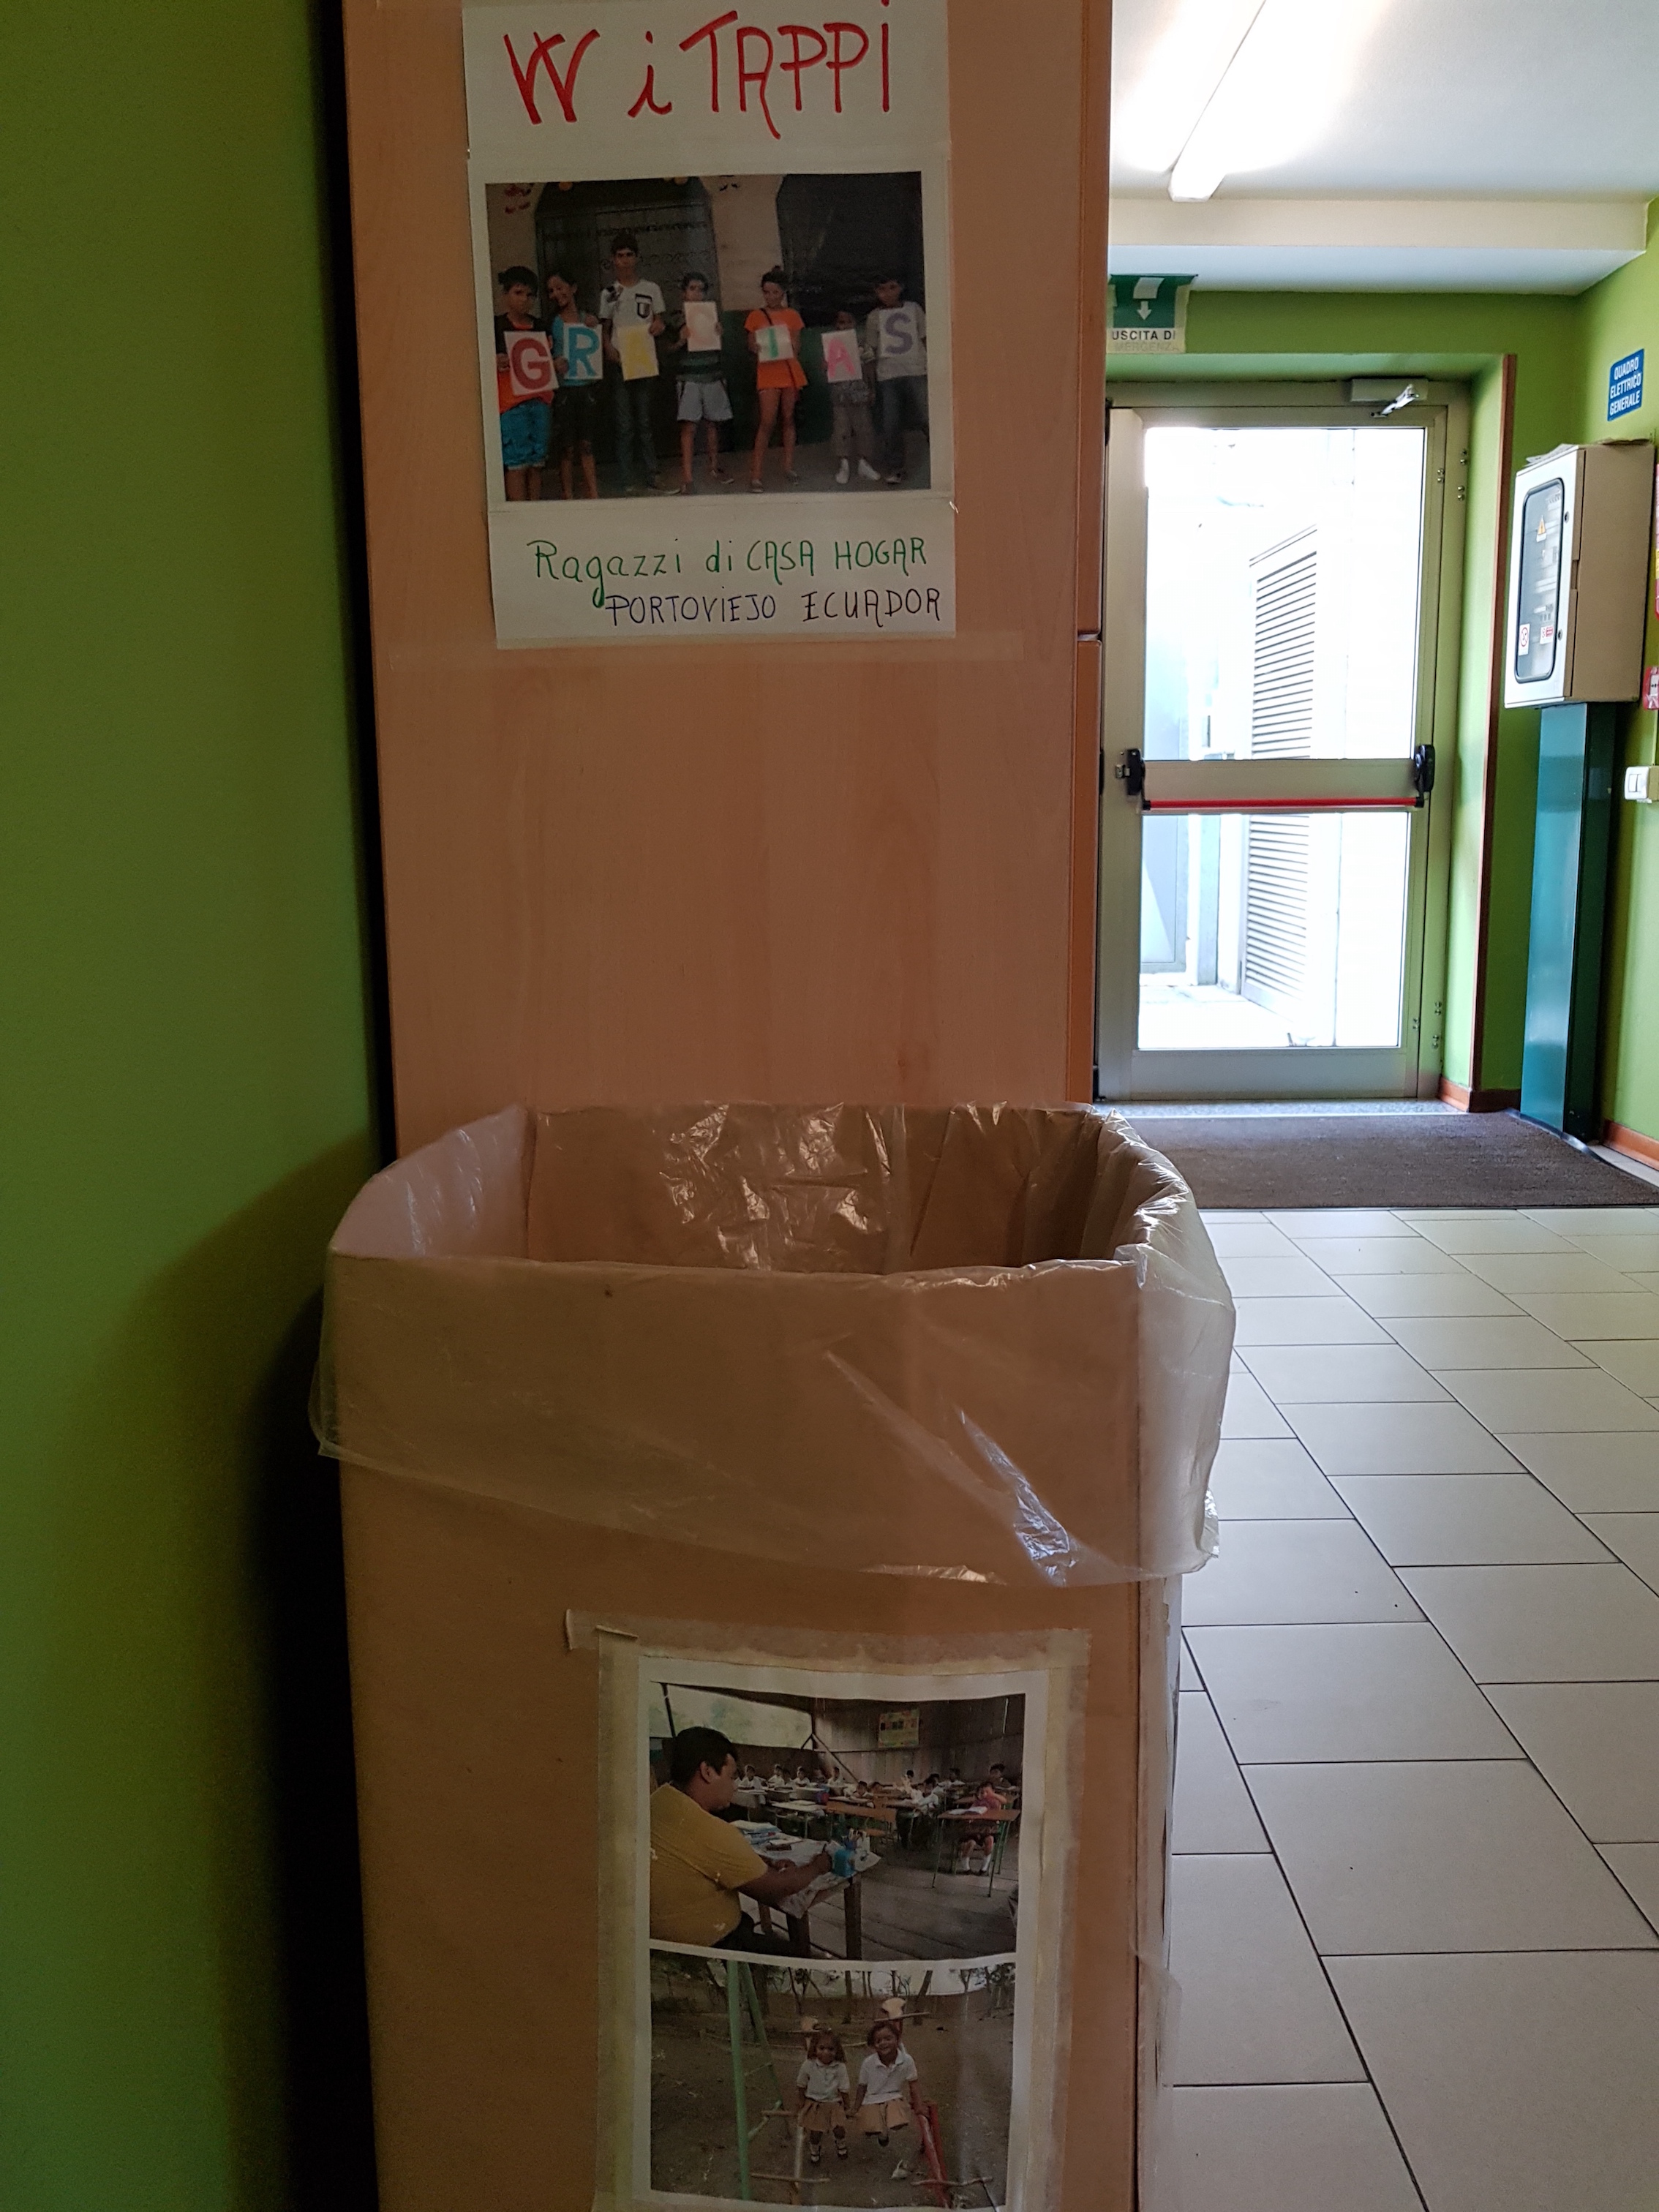 The picture shows the initiative of a group of volunteers aimed to collect caps of bottles in the public library to send funds to the poor countries of the world.